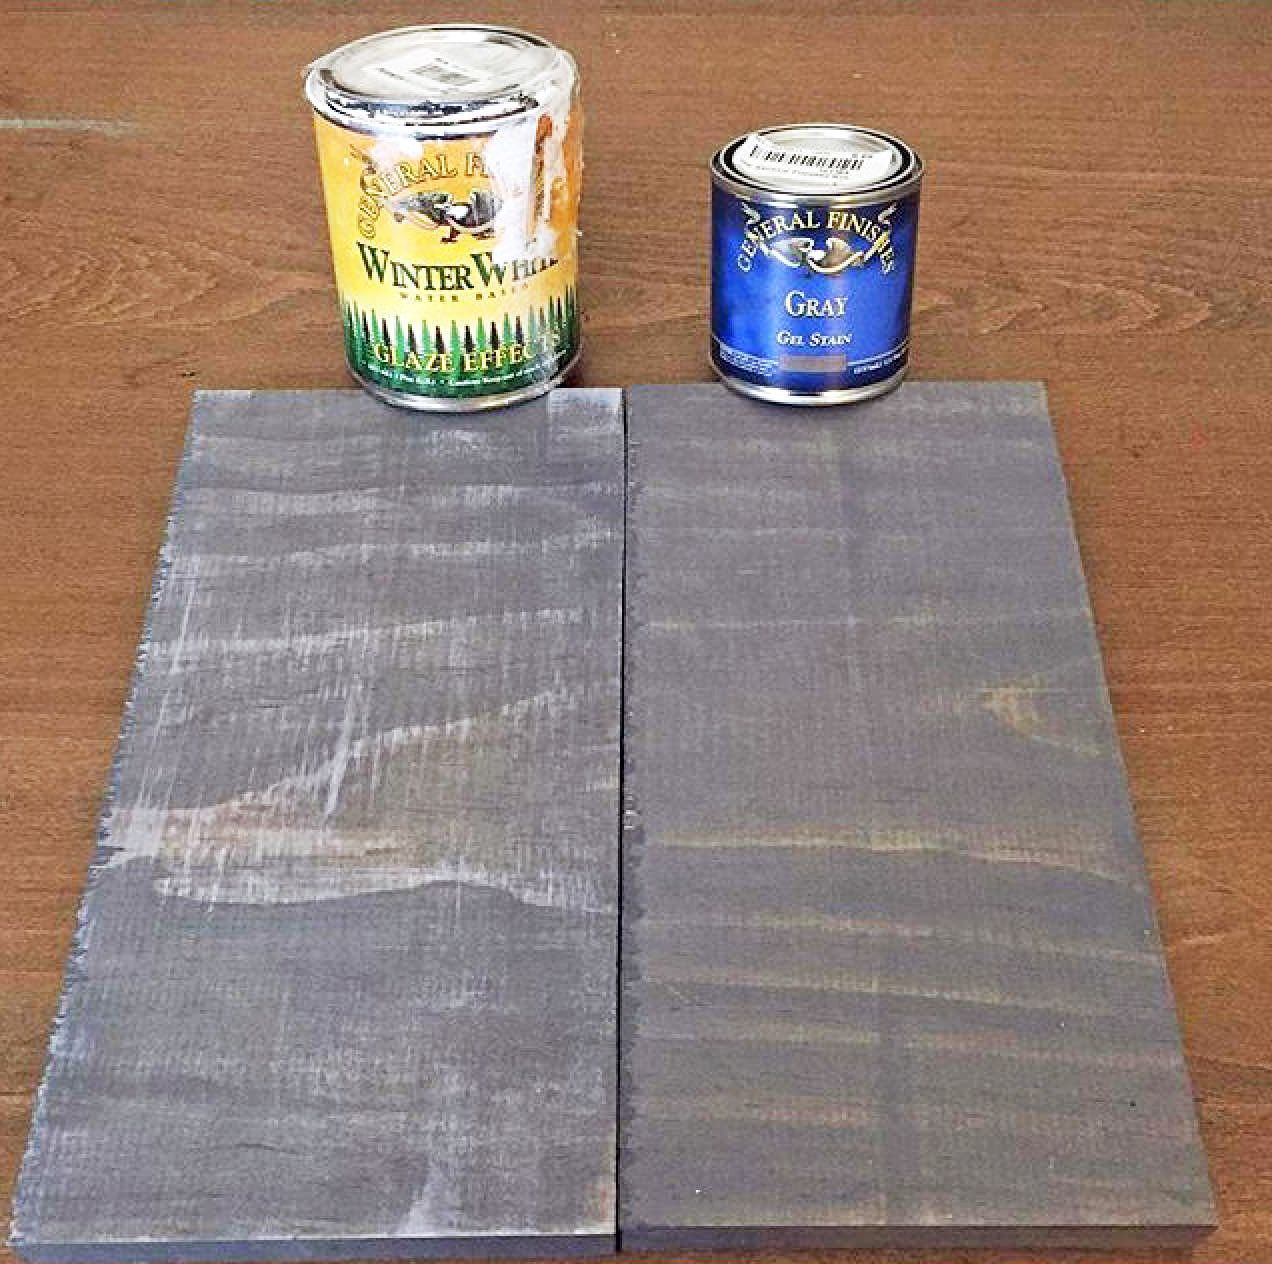 Kitchen cabinets stain glaze - Alchemyhome Shows Off How Gf Gray Gel Stain And Winter White Glaze Effects Can Give You